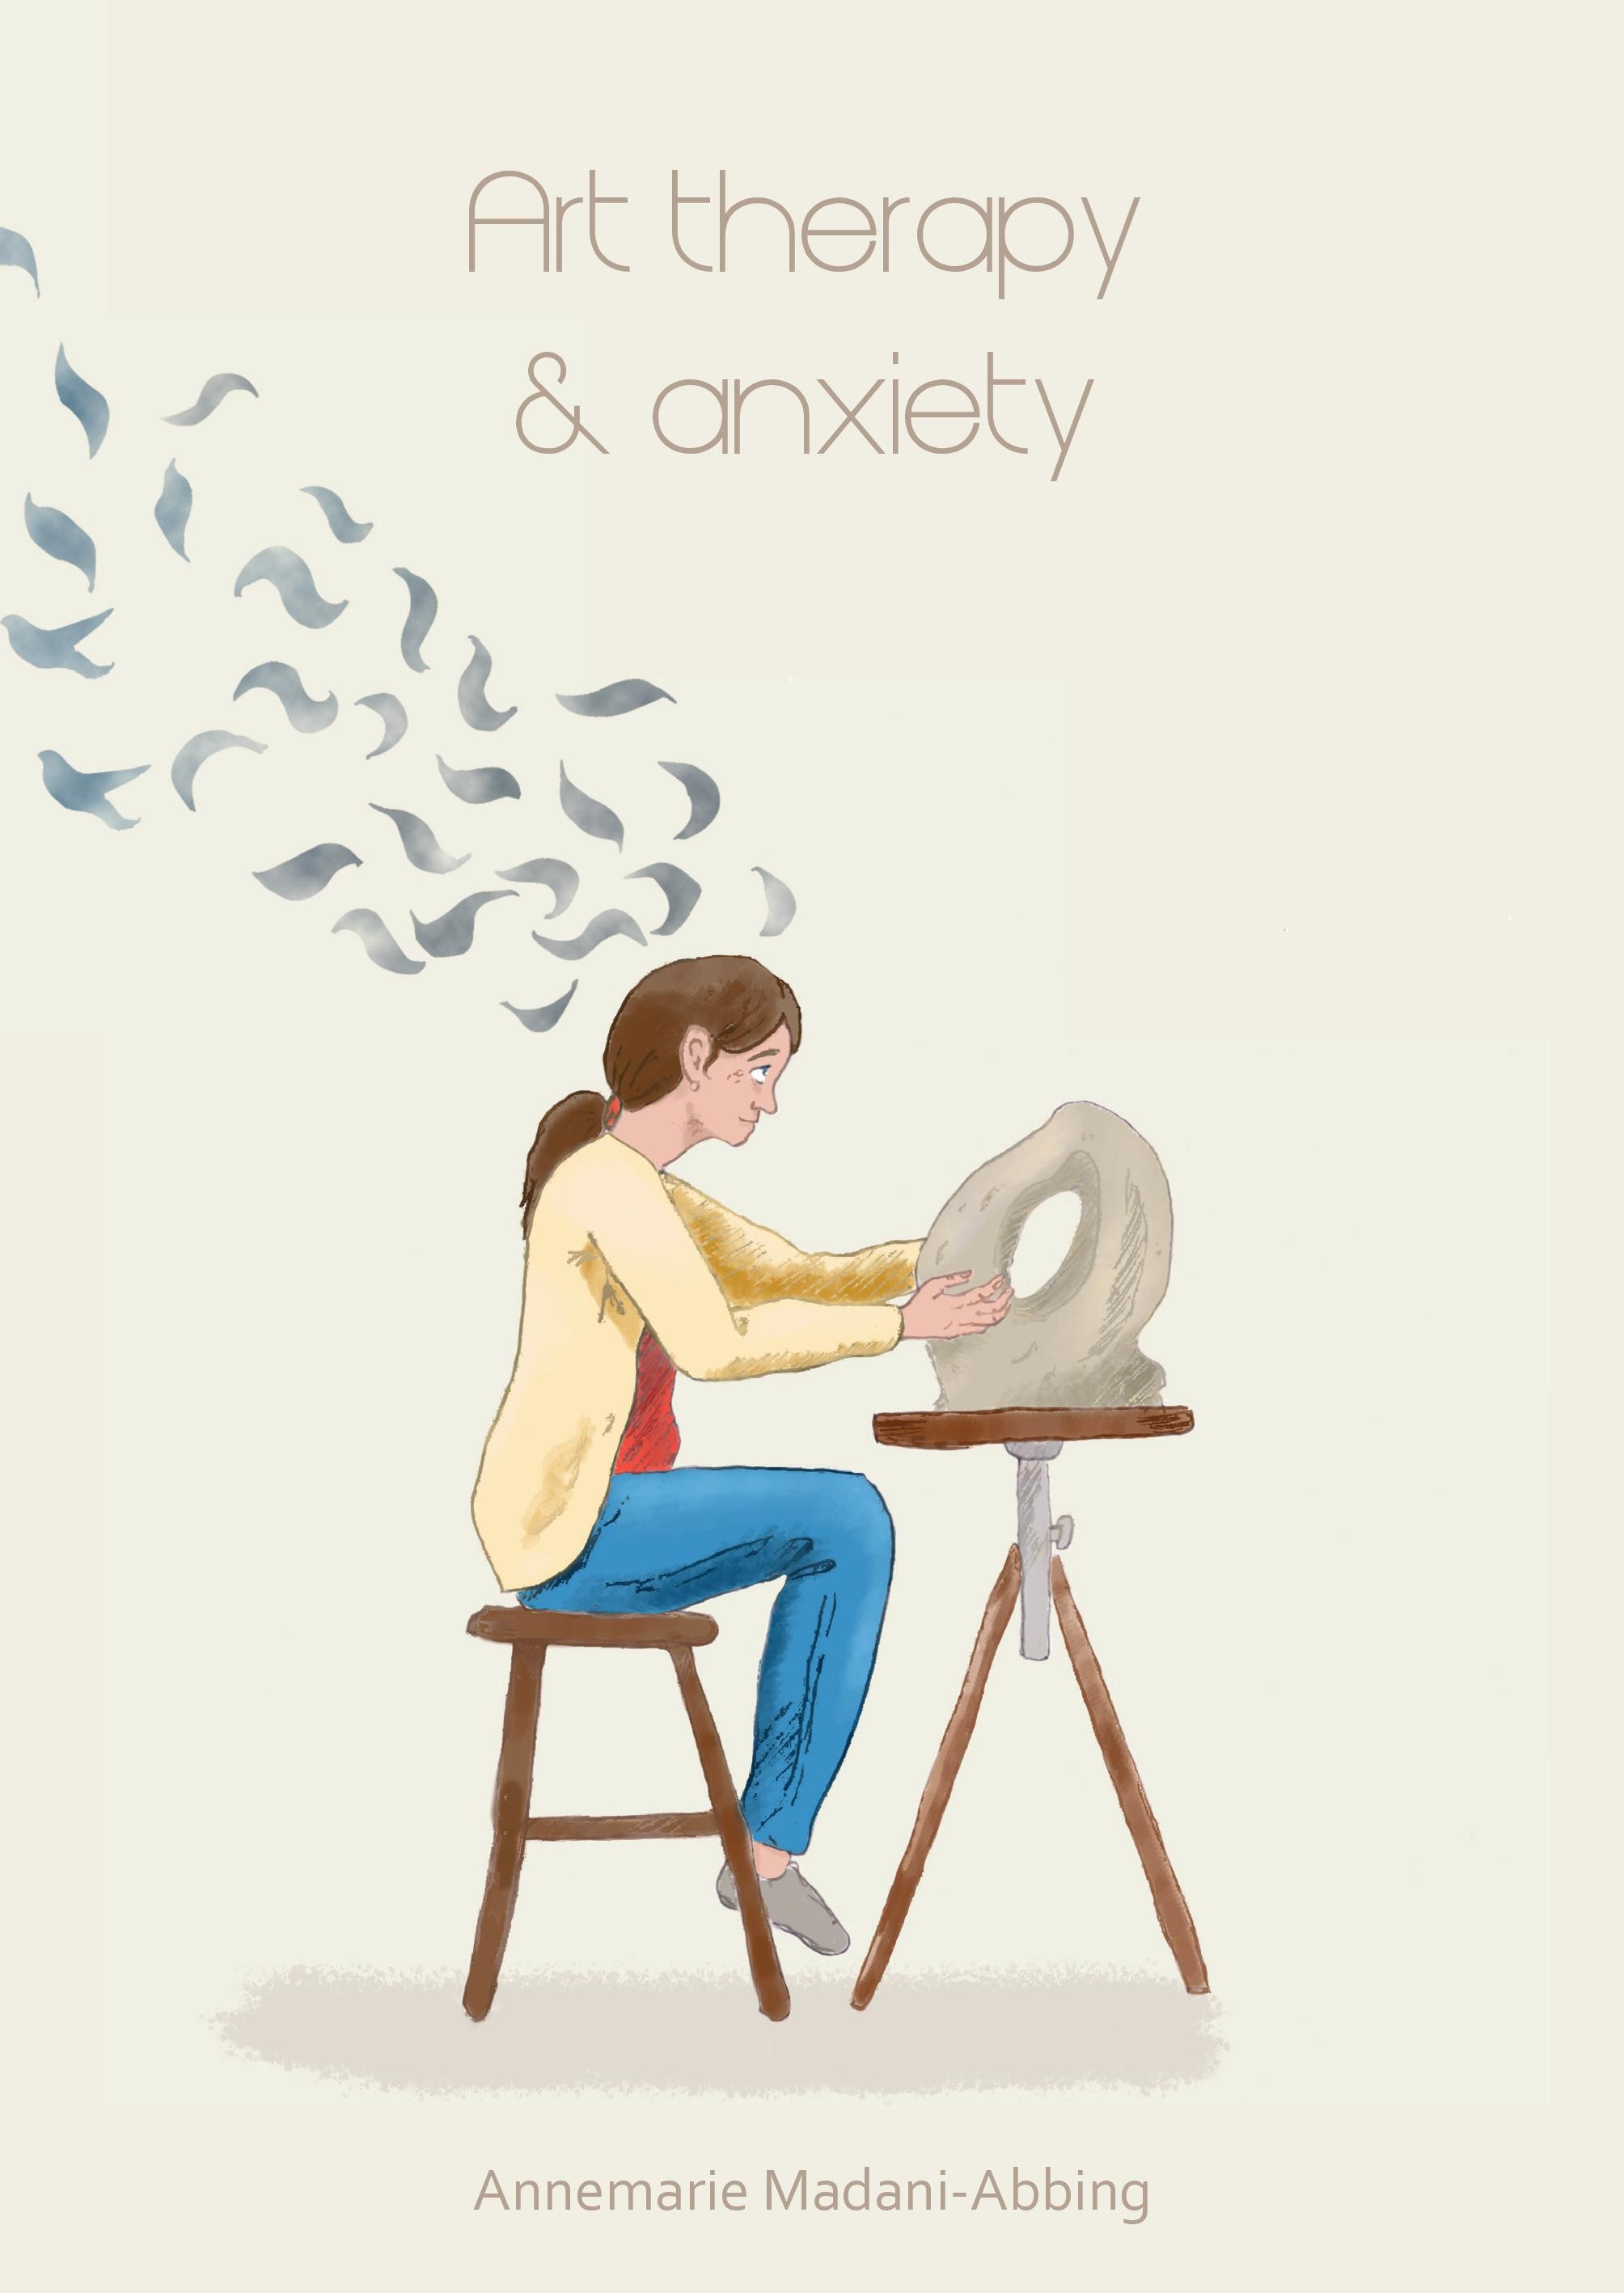 Art therapy & anxiety door Annemarie Madani-Abbing